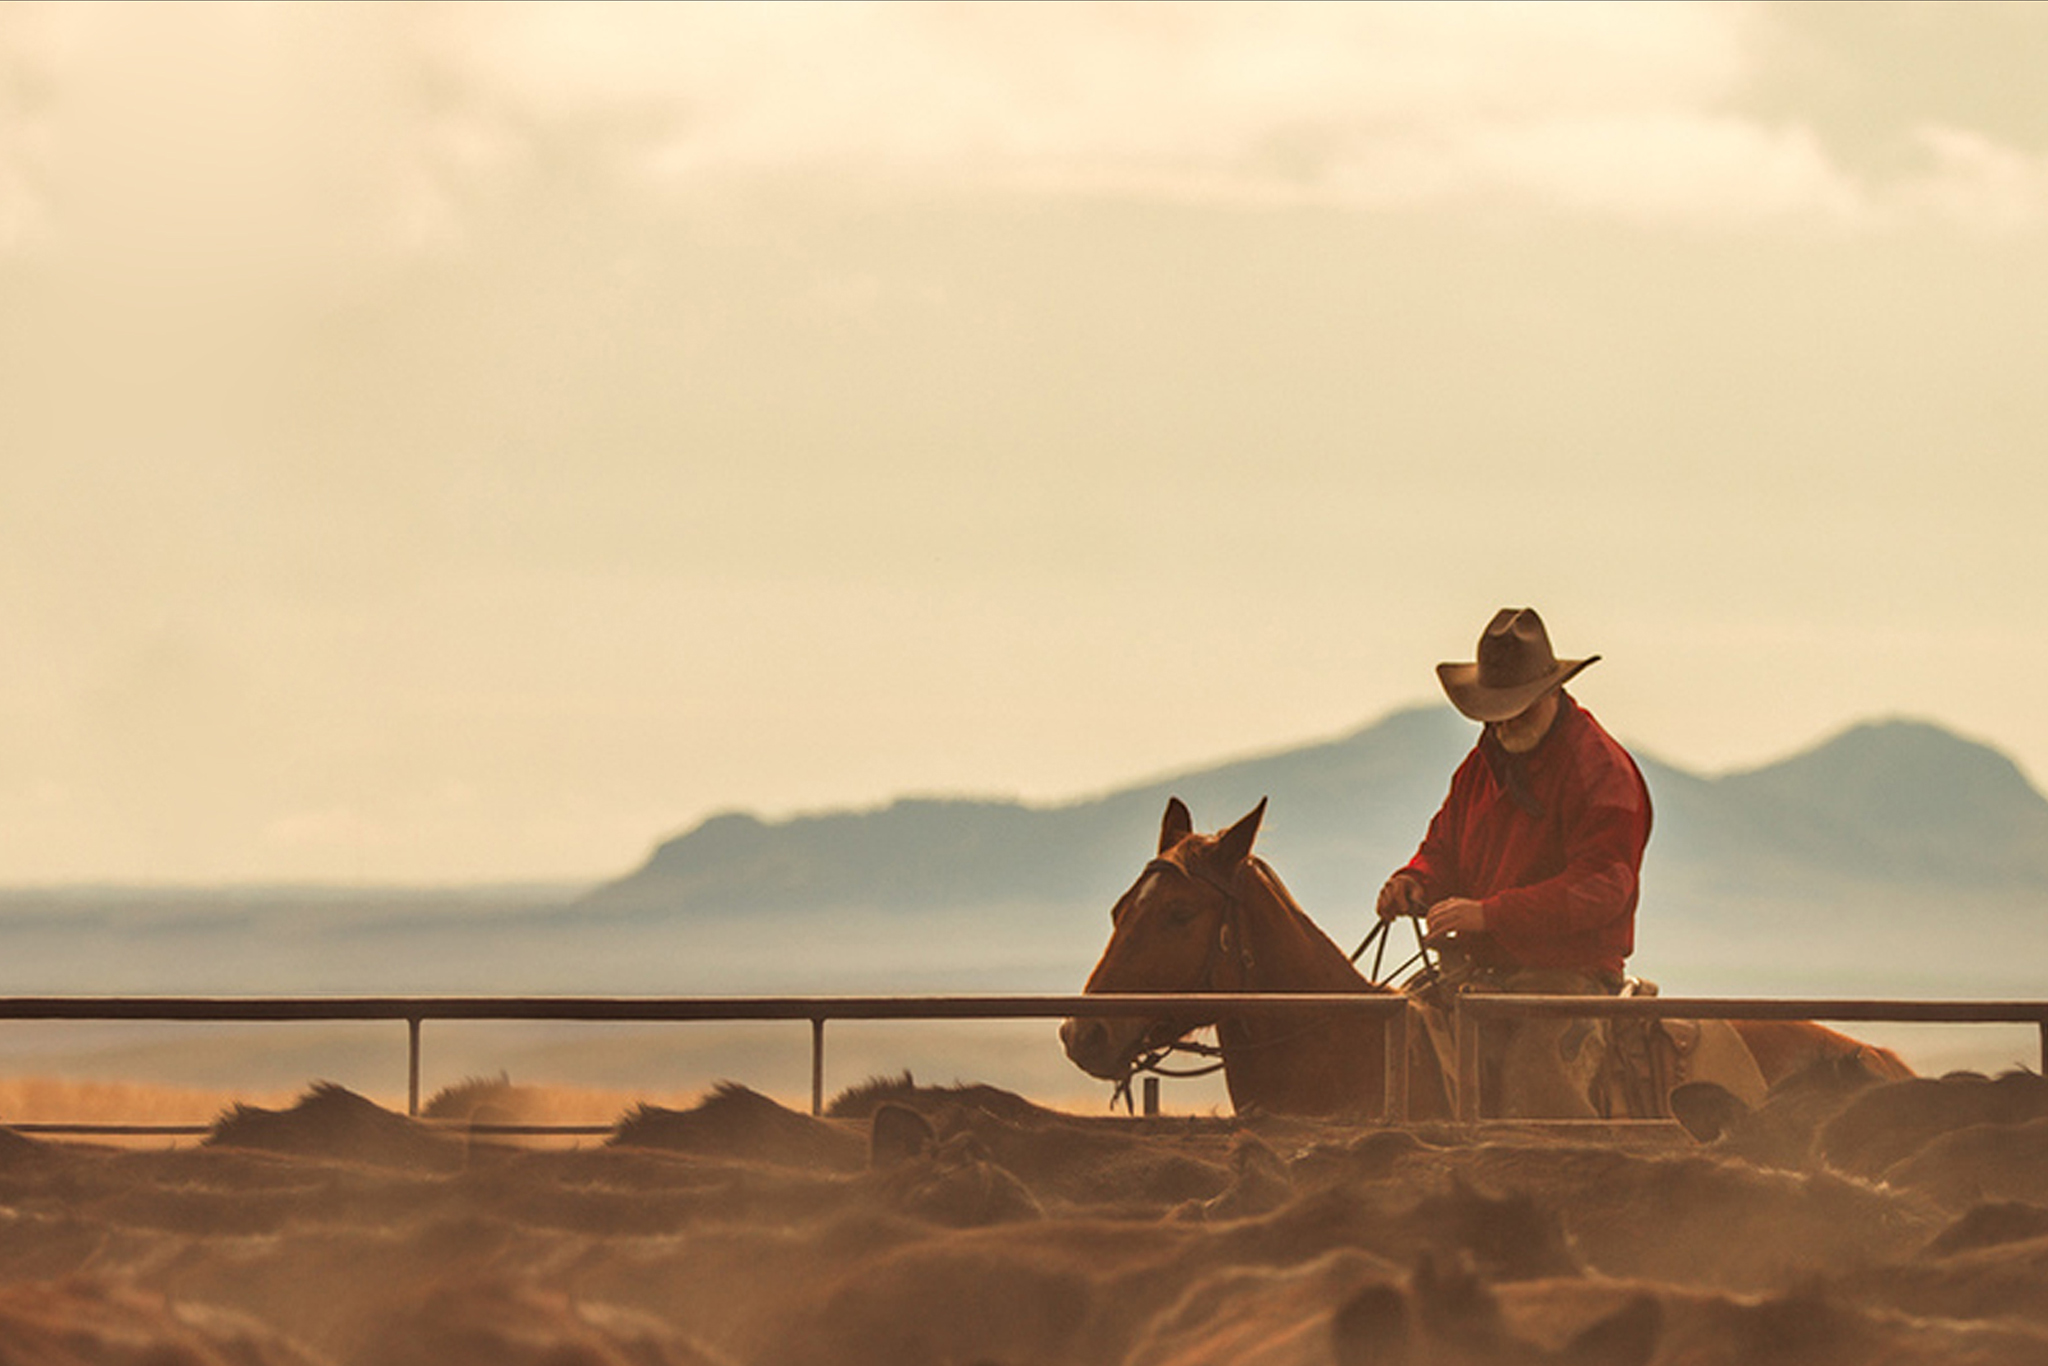 Rancher working cattle on horseback